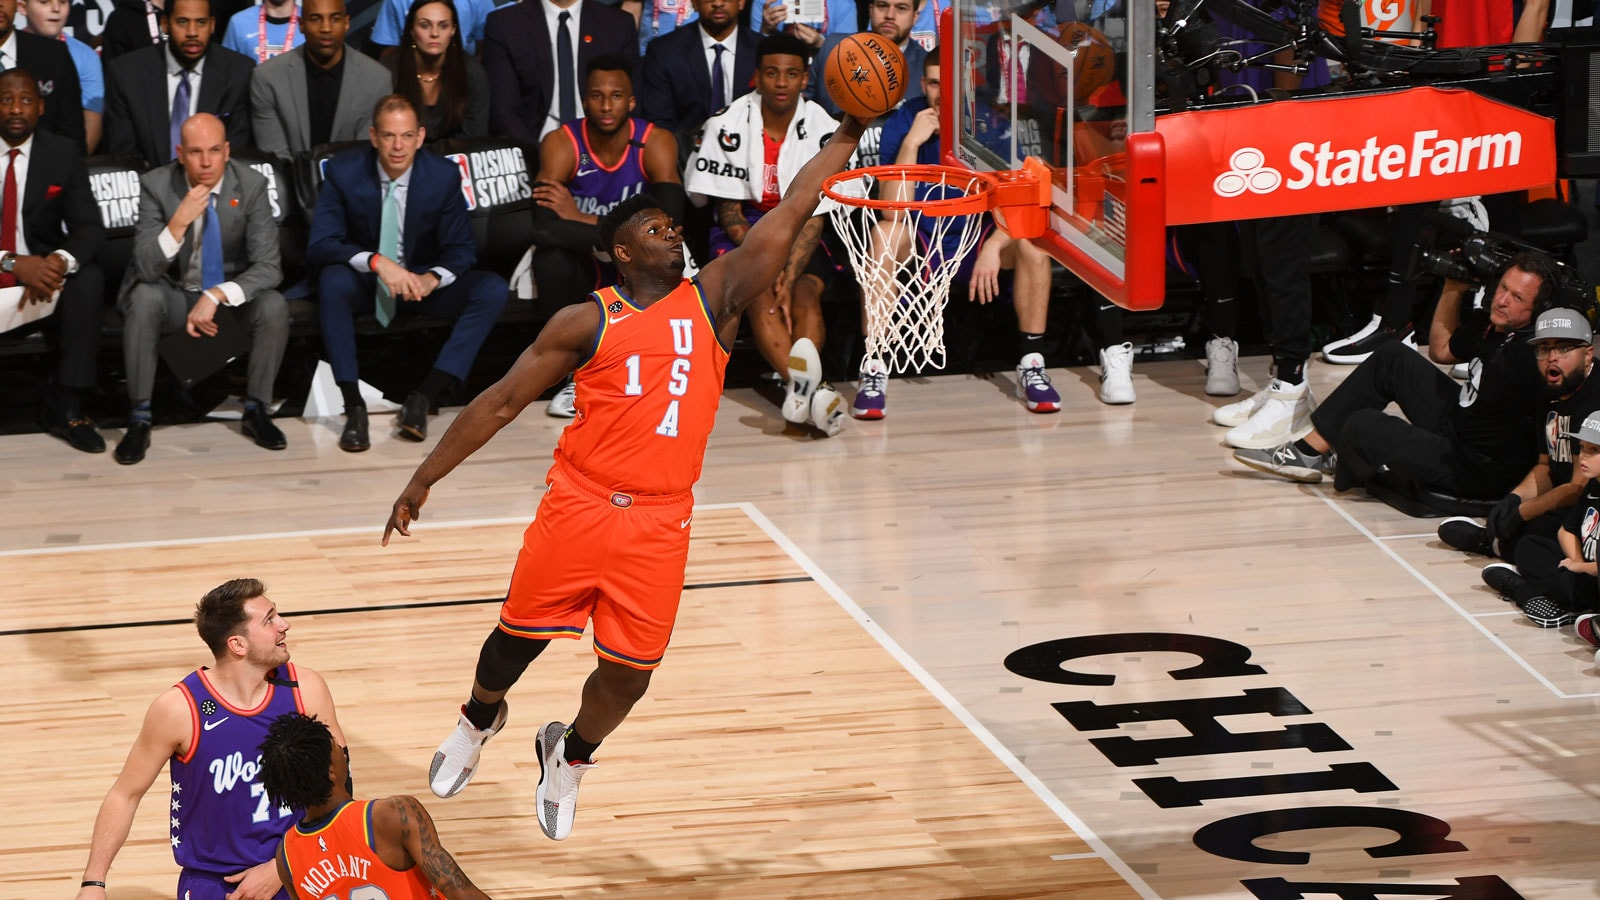 Zion Williamson finished the Rising Stars exhibition with 14 points.